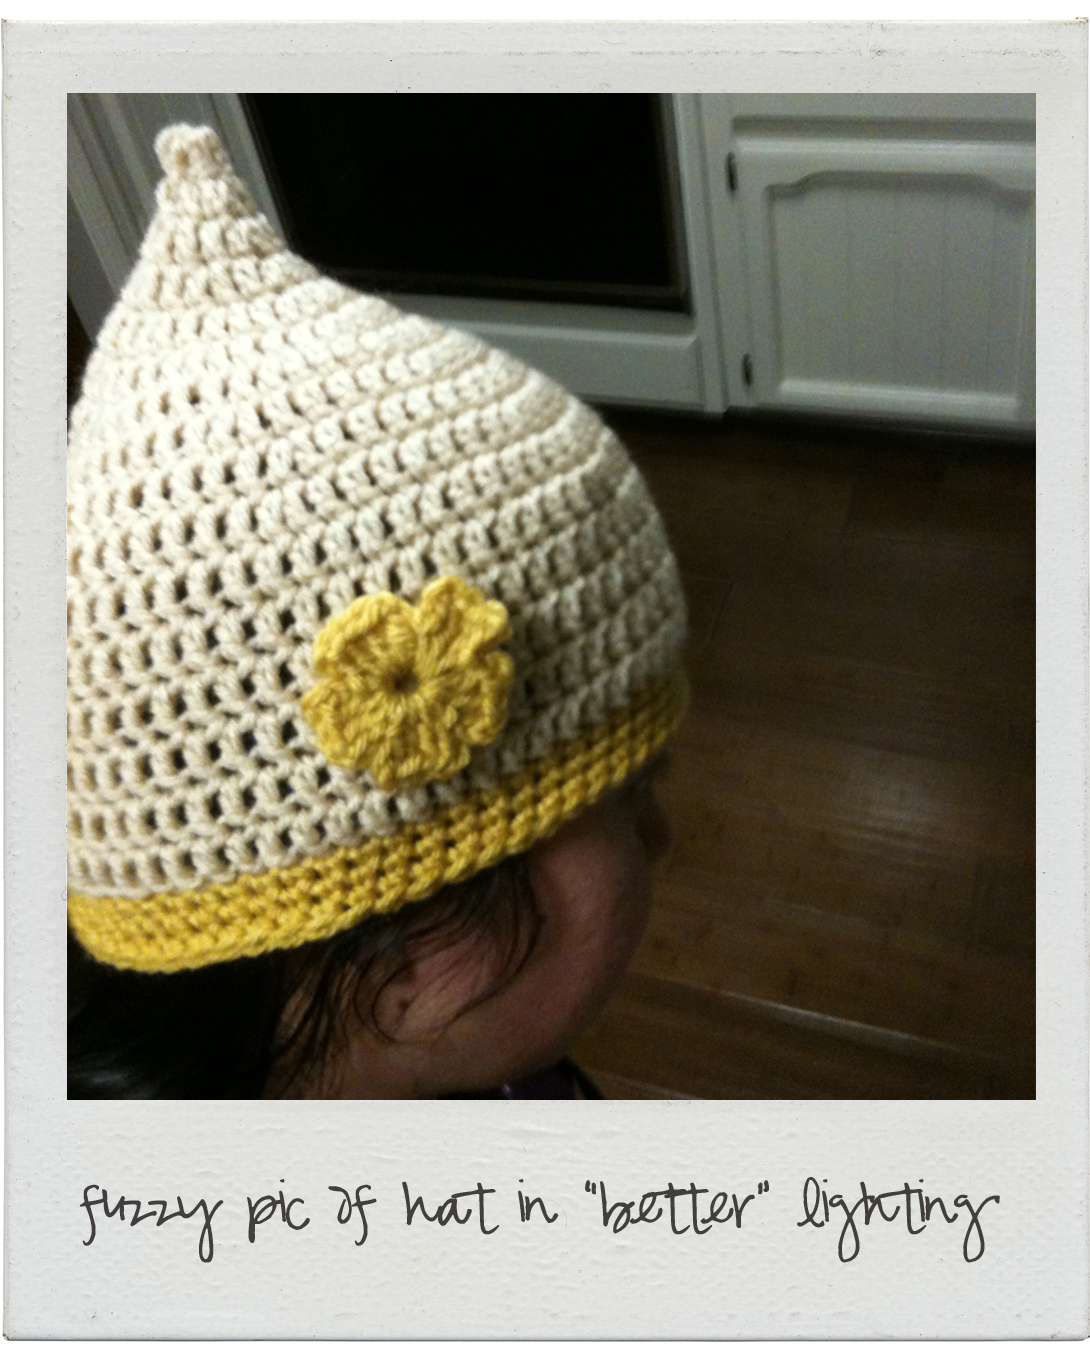 Insprink: Glee Inspired Quinn Fabray Crochet Hat!